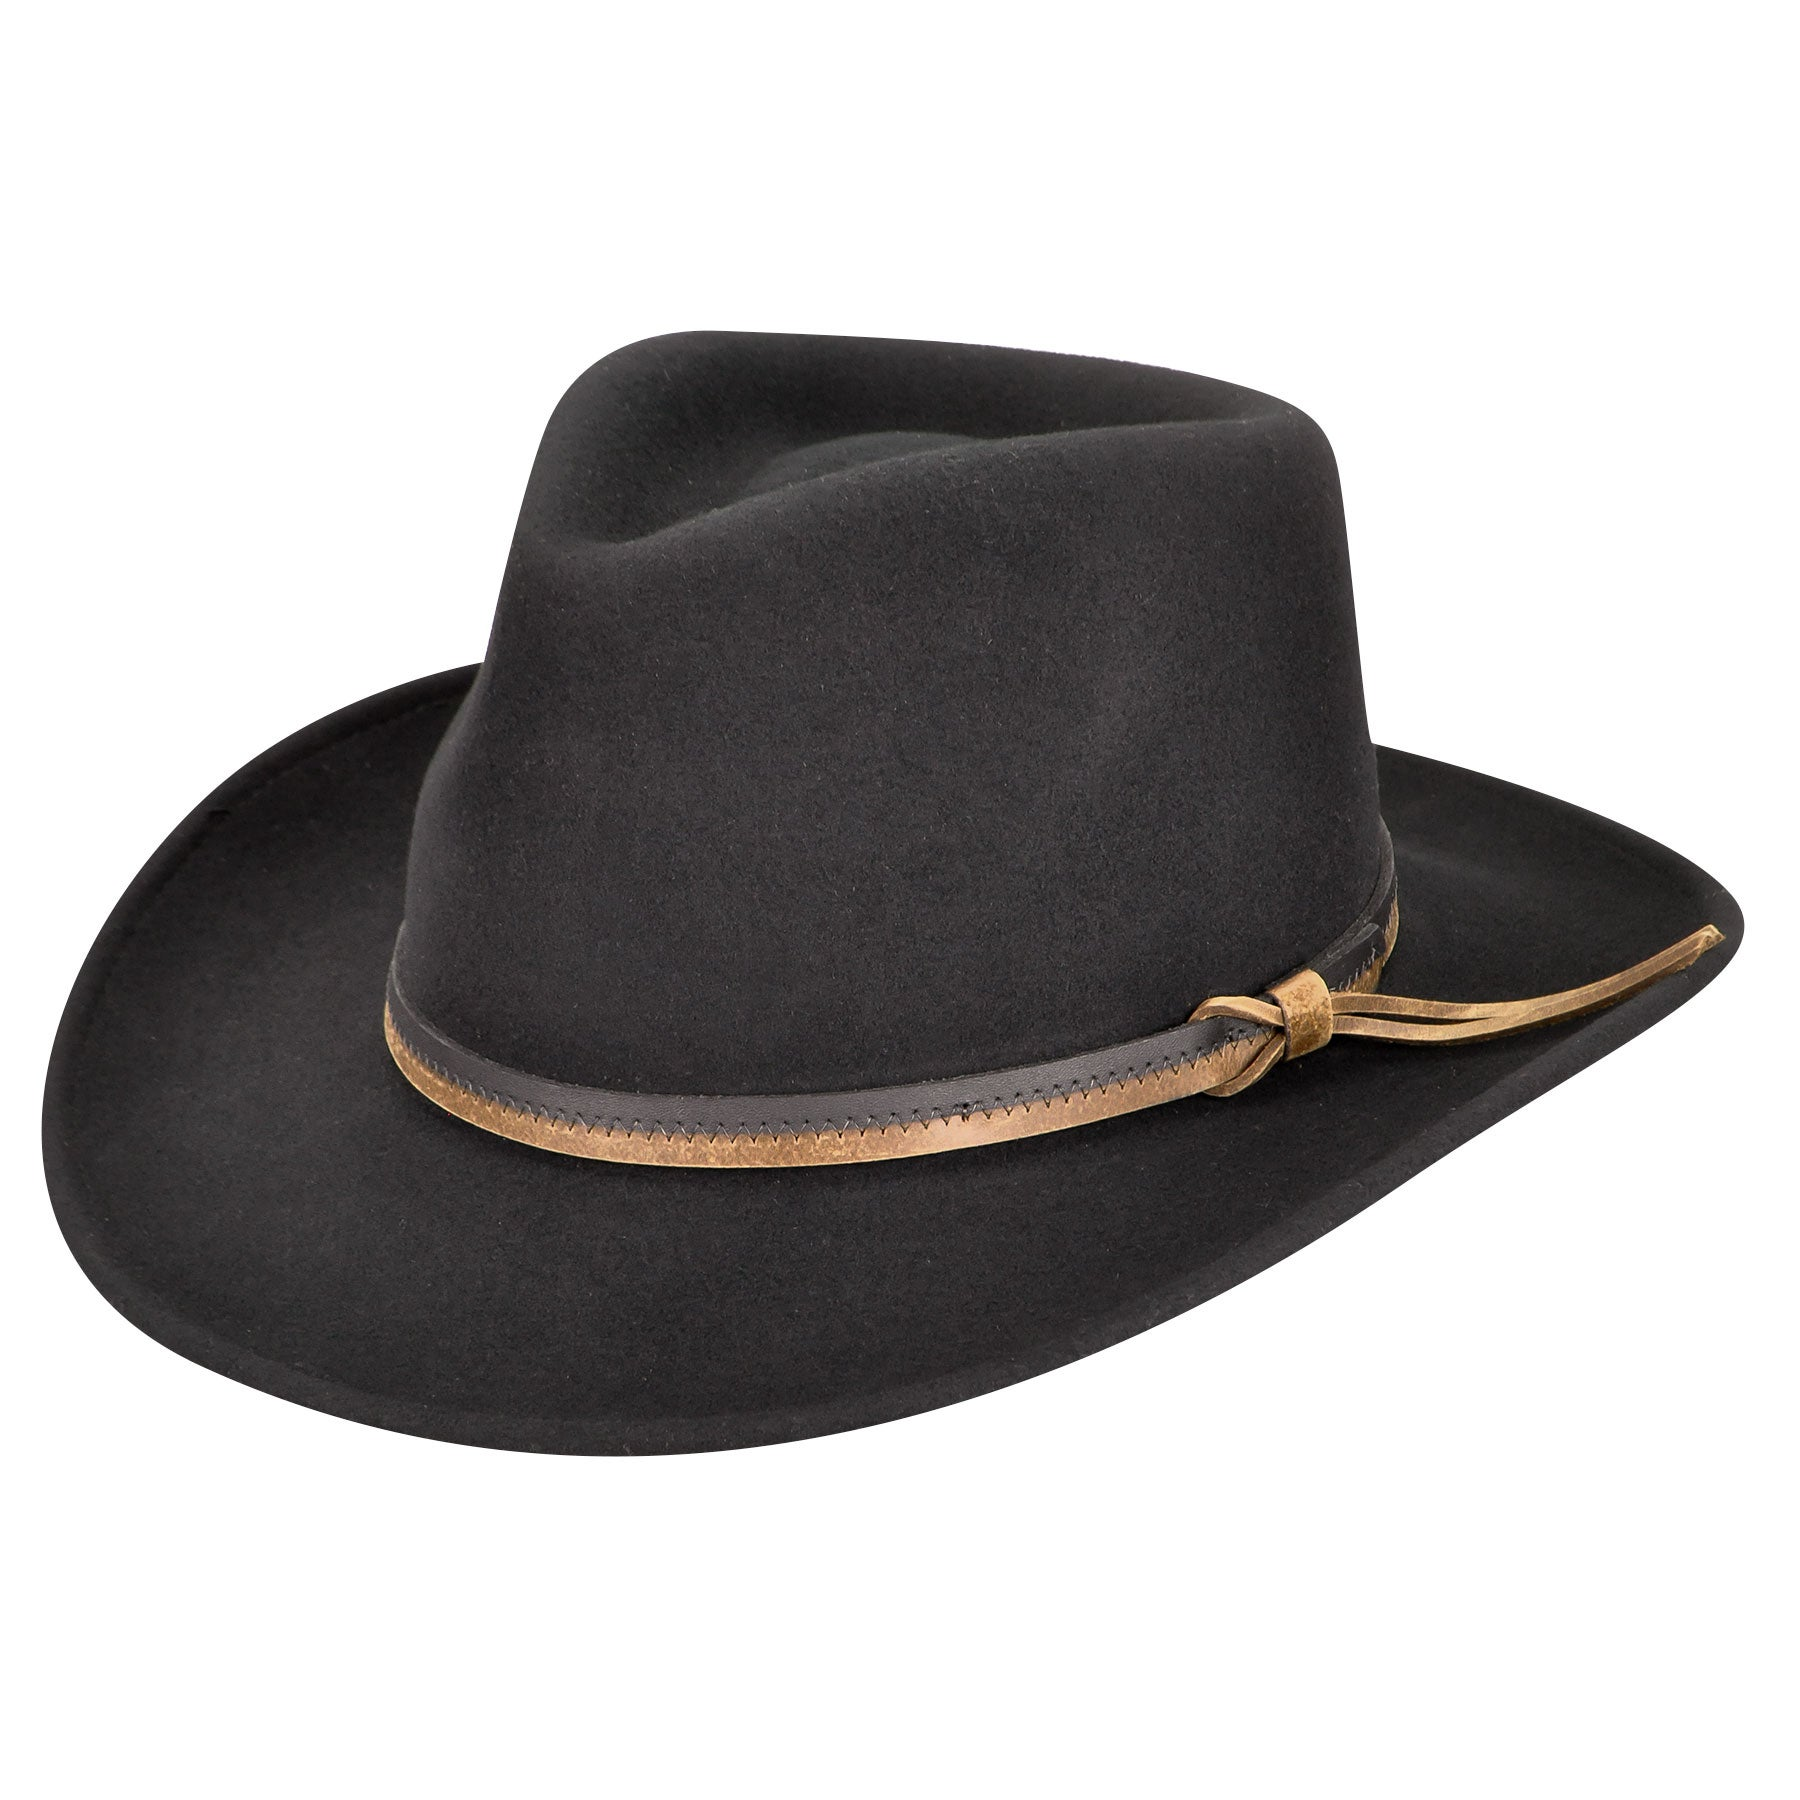 Country Gentleman Felt Outback Hat in Black